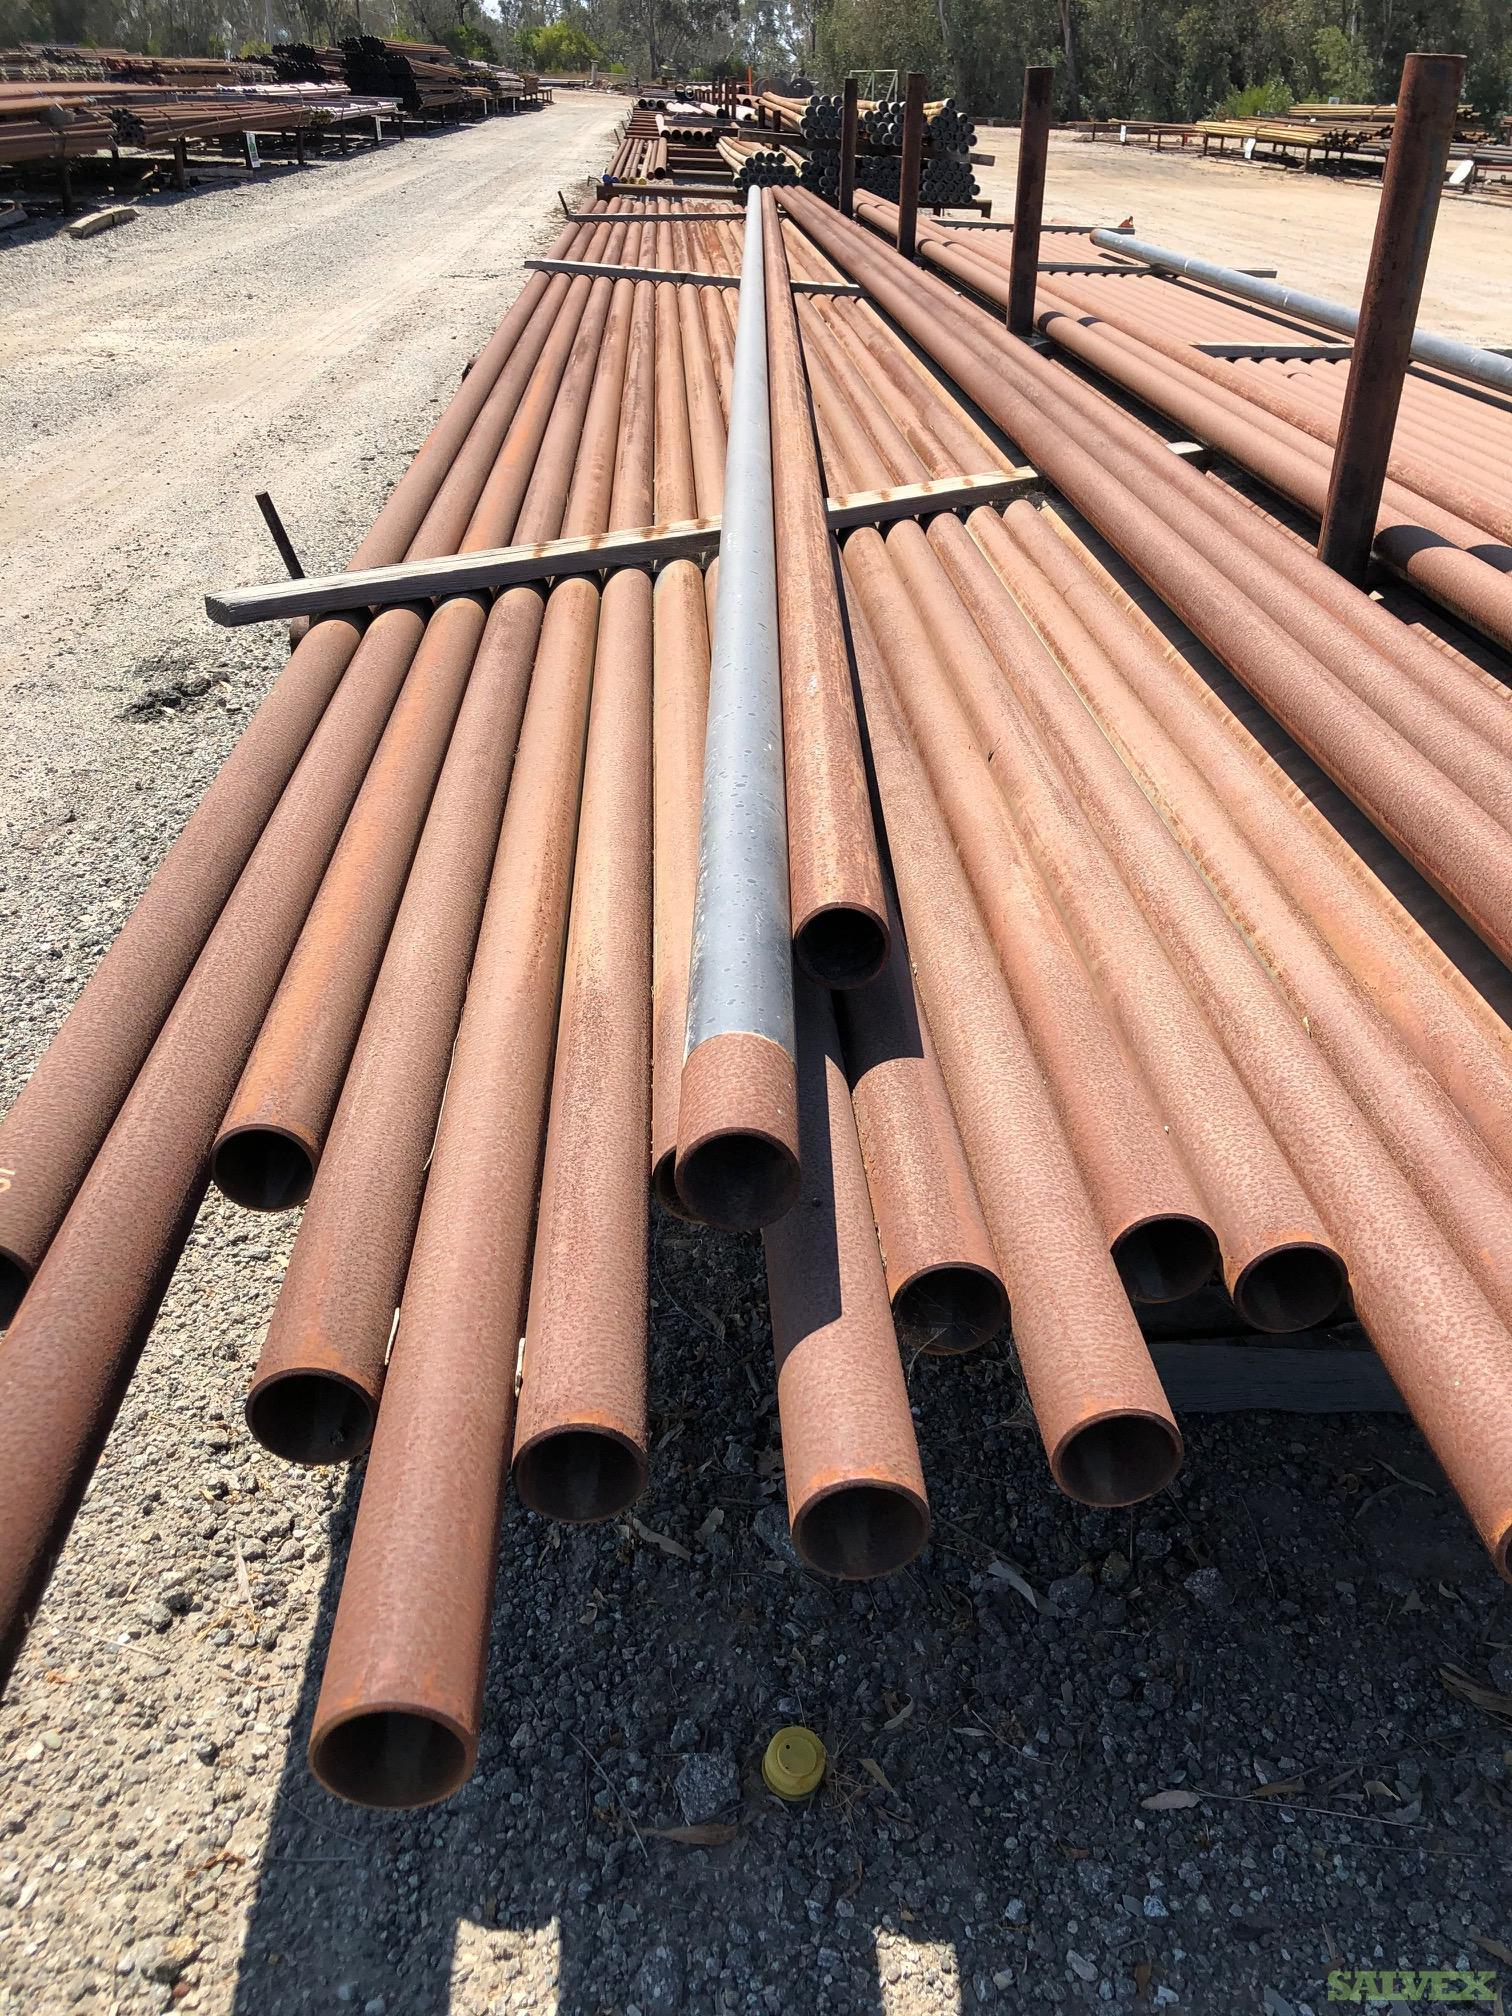 2 3/8- 8 5/8 Surplus Line Pipe & Tubing (120 MT / 1,000 Joints)